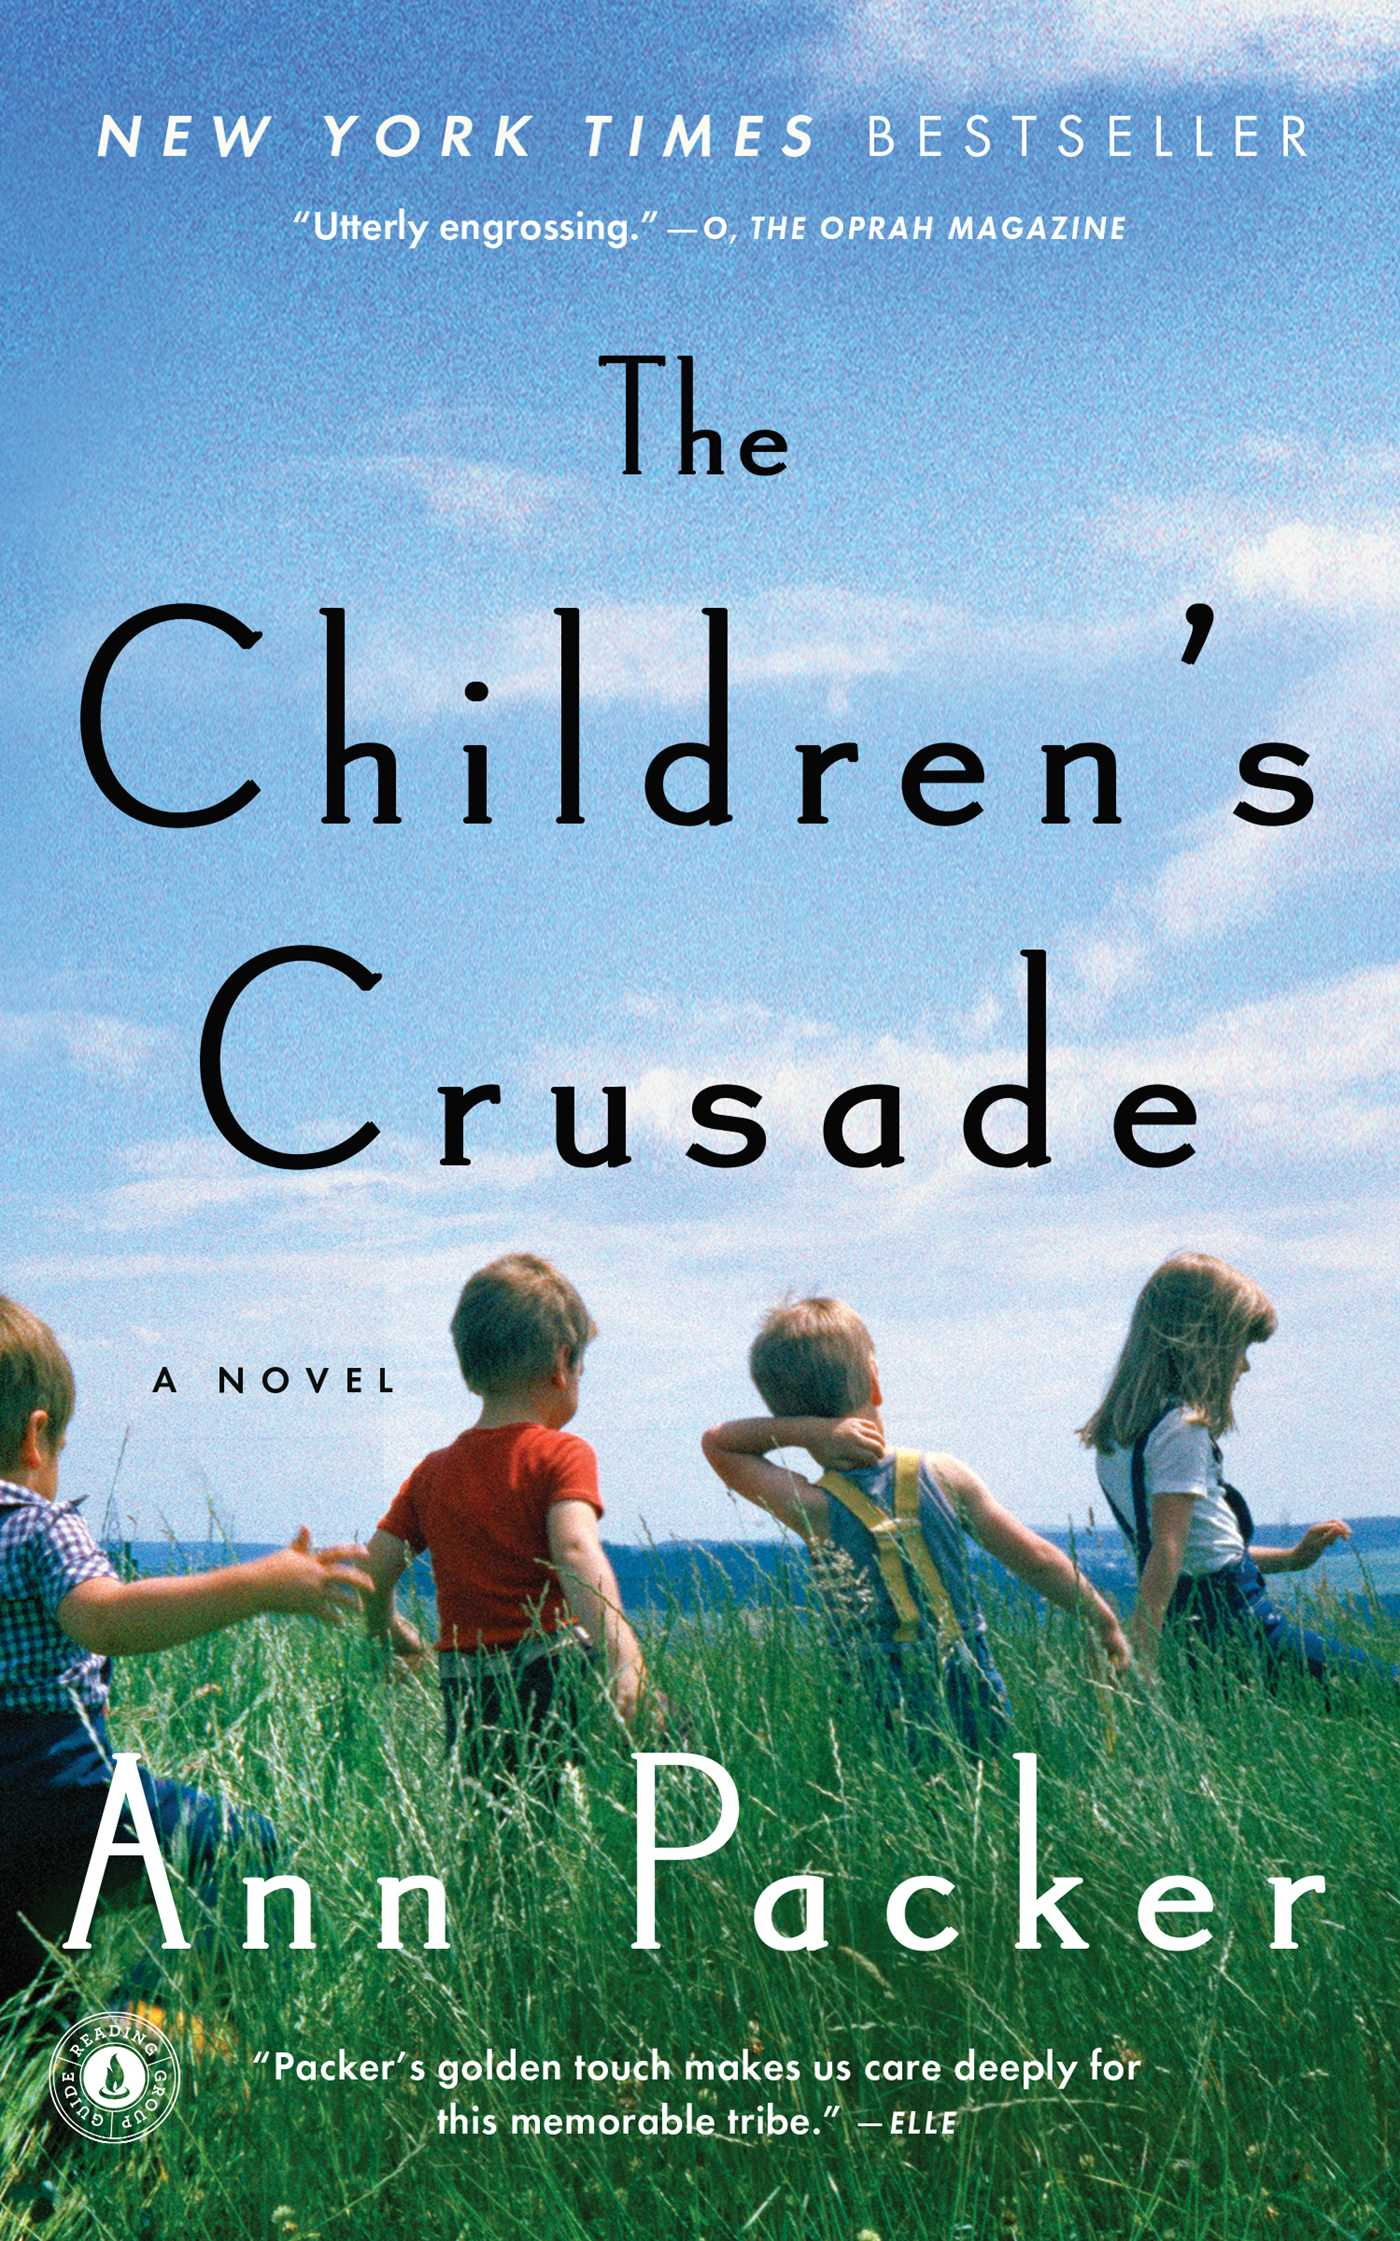 The childrens crusade 9781476710471 hr